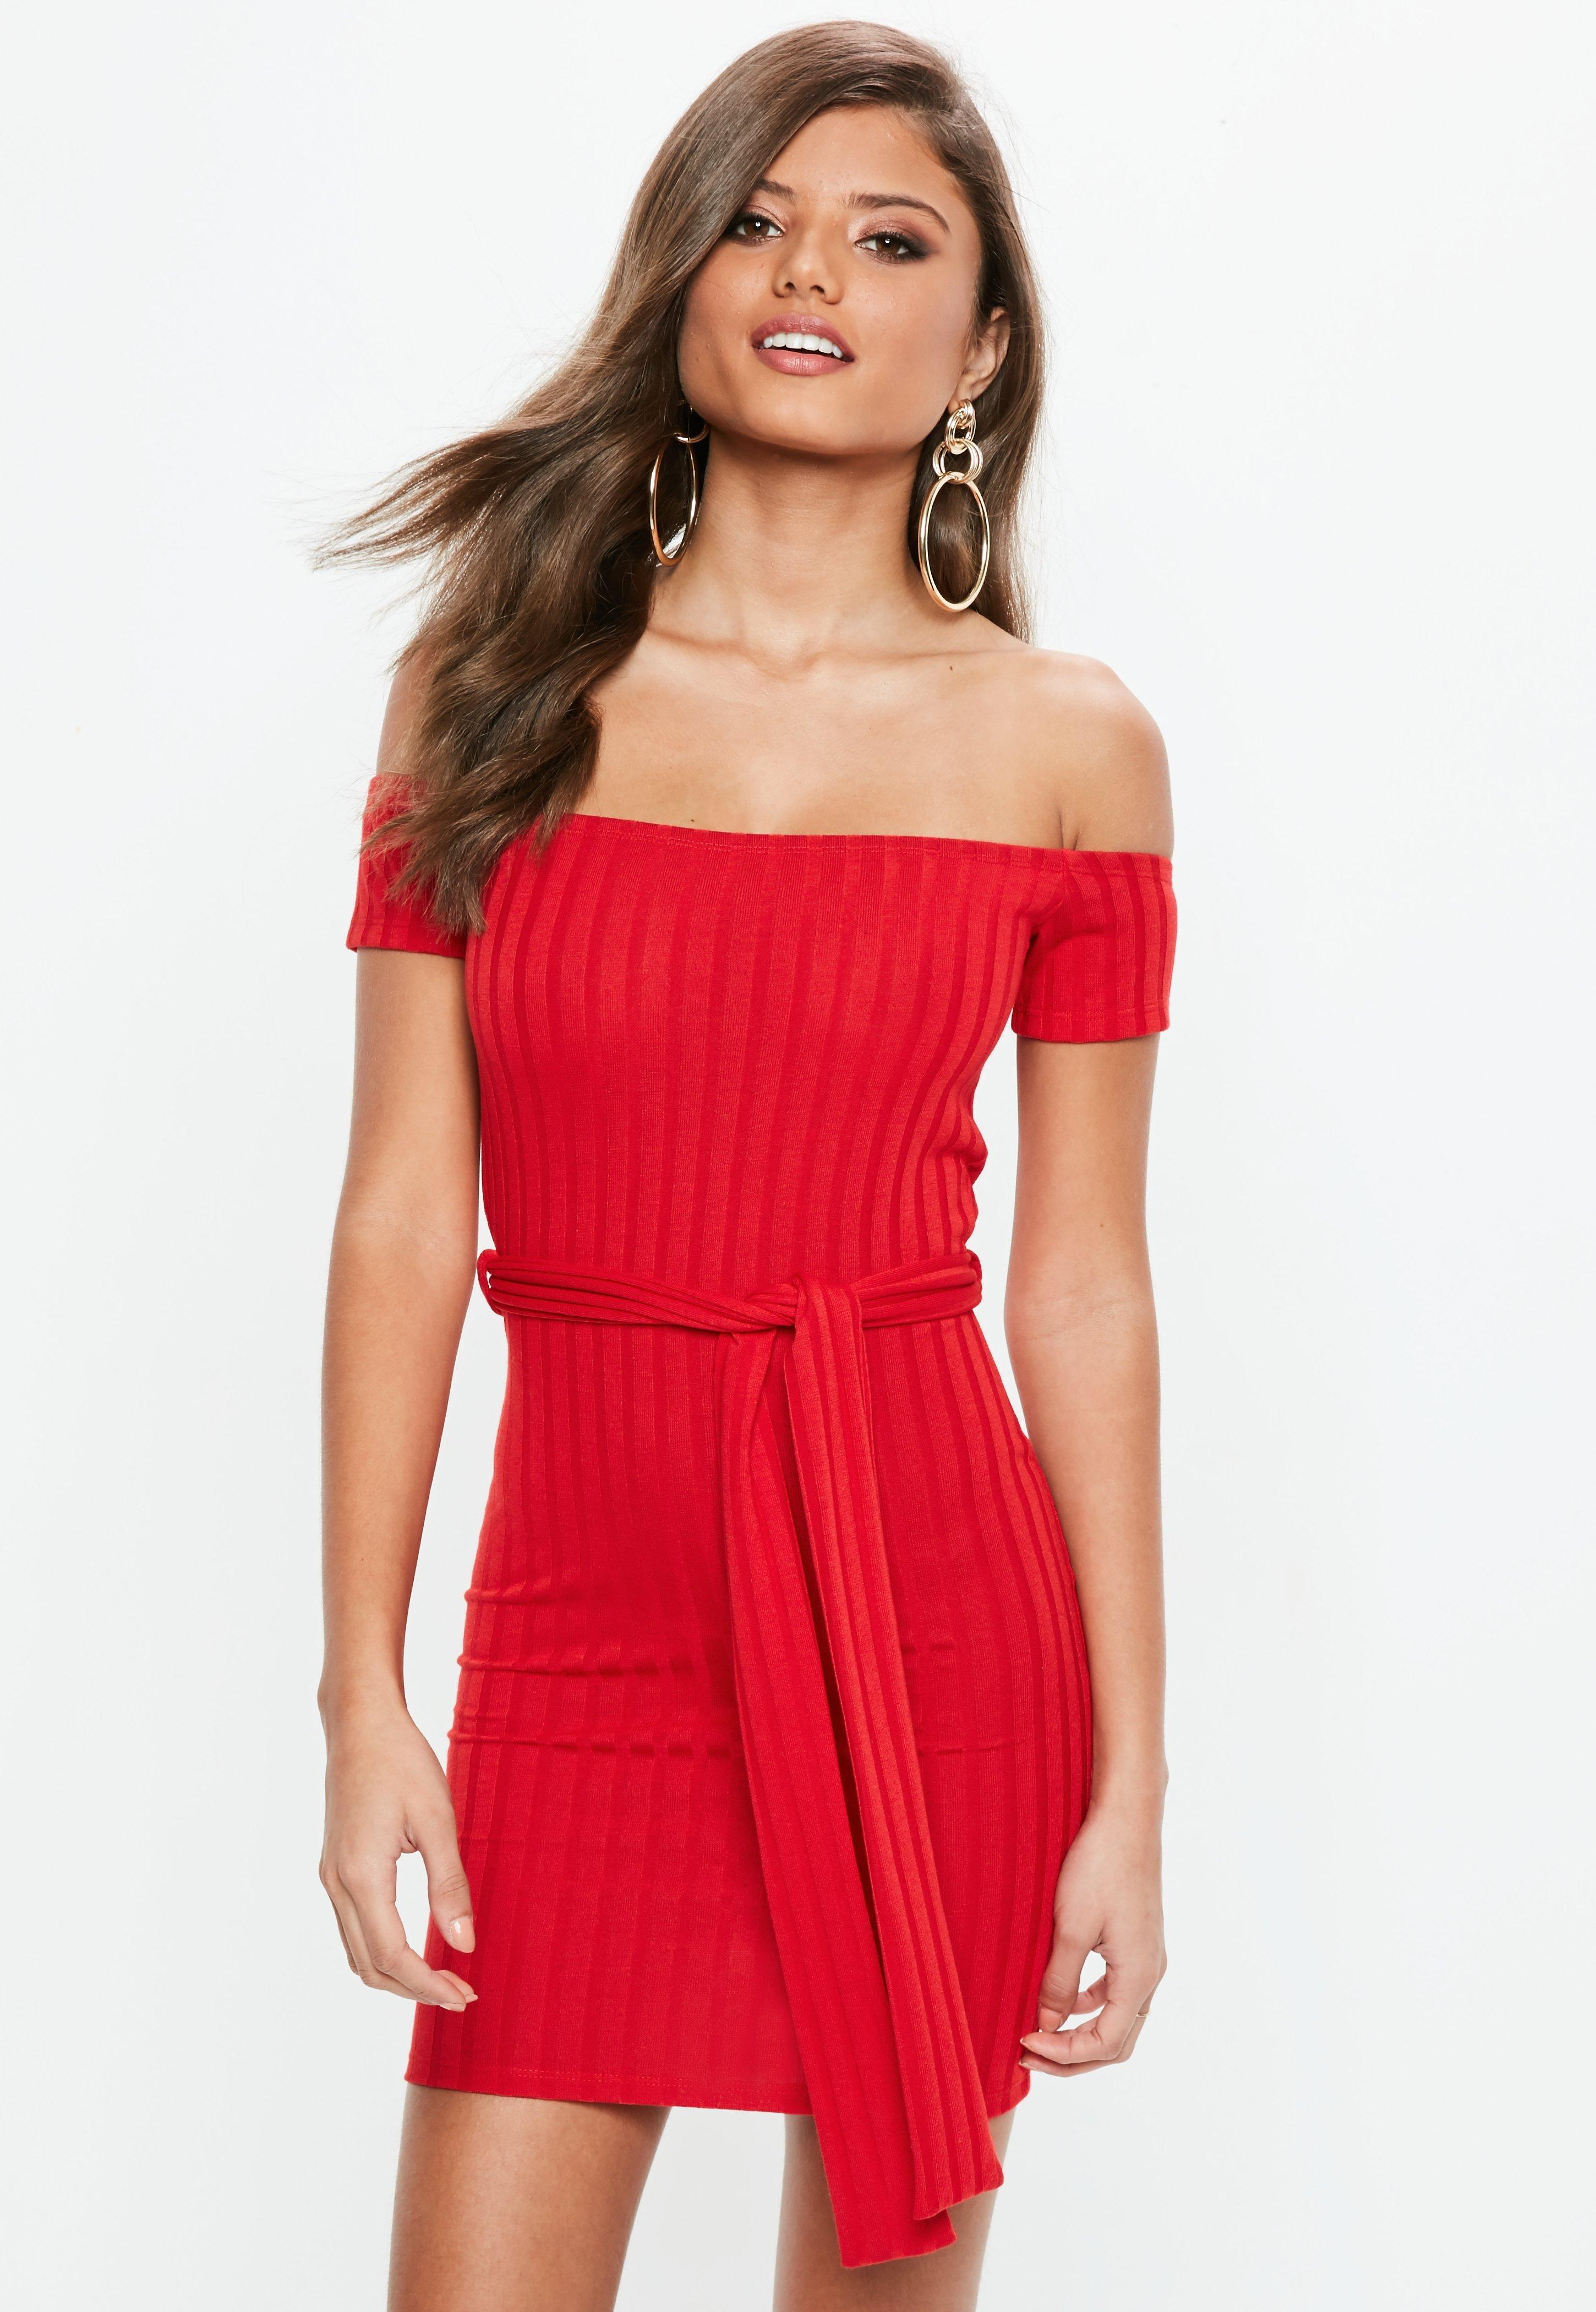 Evening Dresses | Long Evening Gowns - Missguided Australia